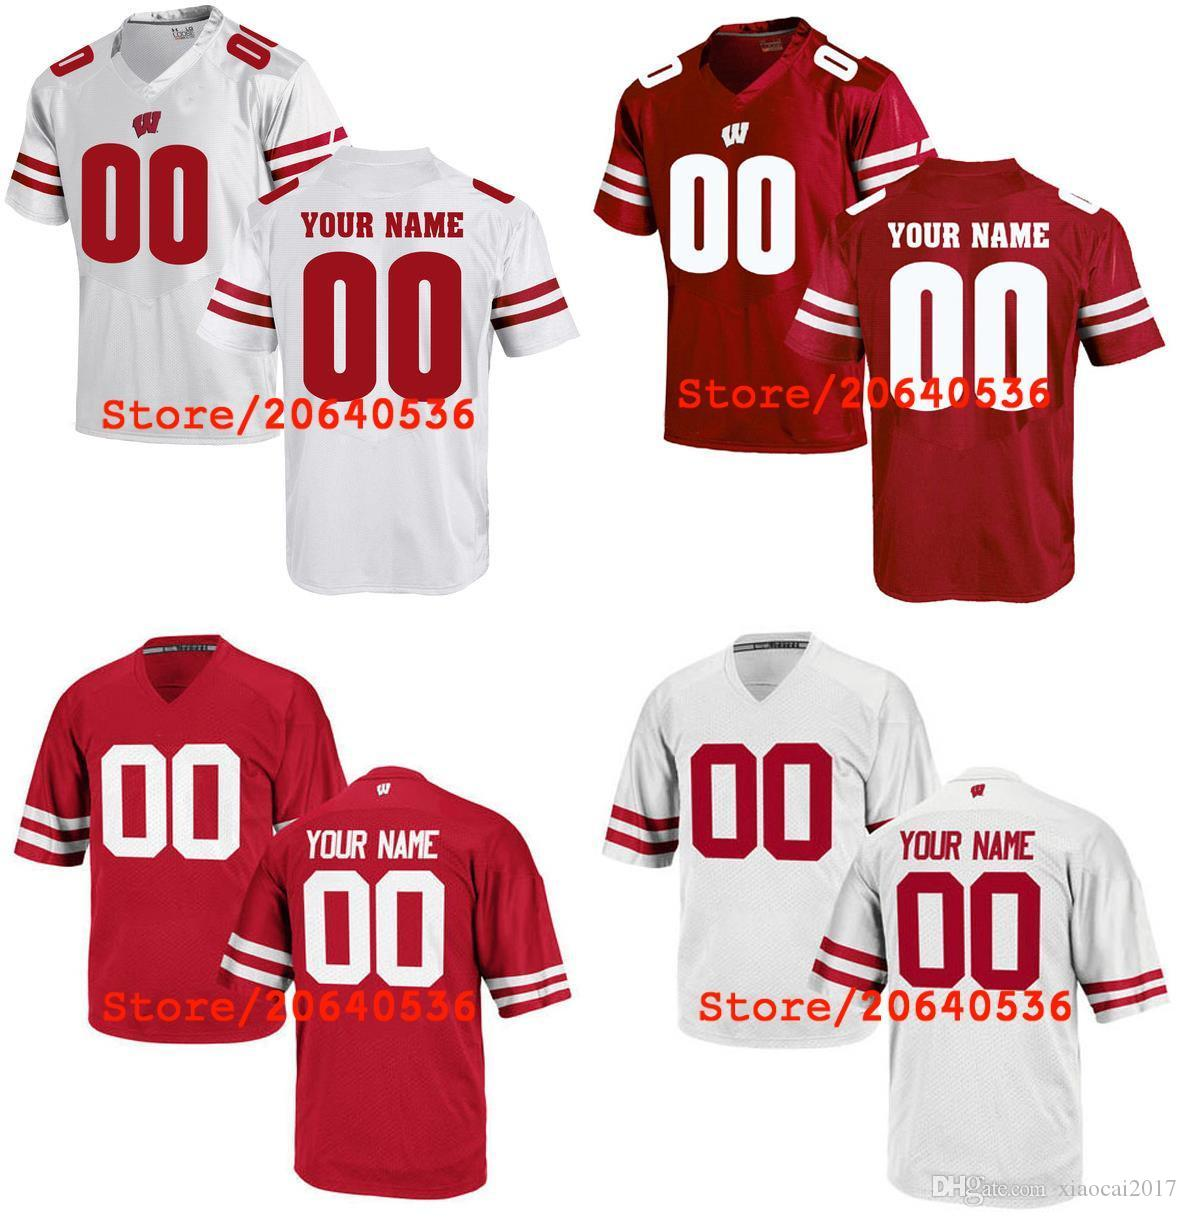 8eb55541892 2019 Cheap Custom Wisconsin Badgers College Jersey Mens Women Youth Kids  Personalized Any Number Of Any Name Stitched Red White Football Jerseys  From ...